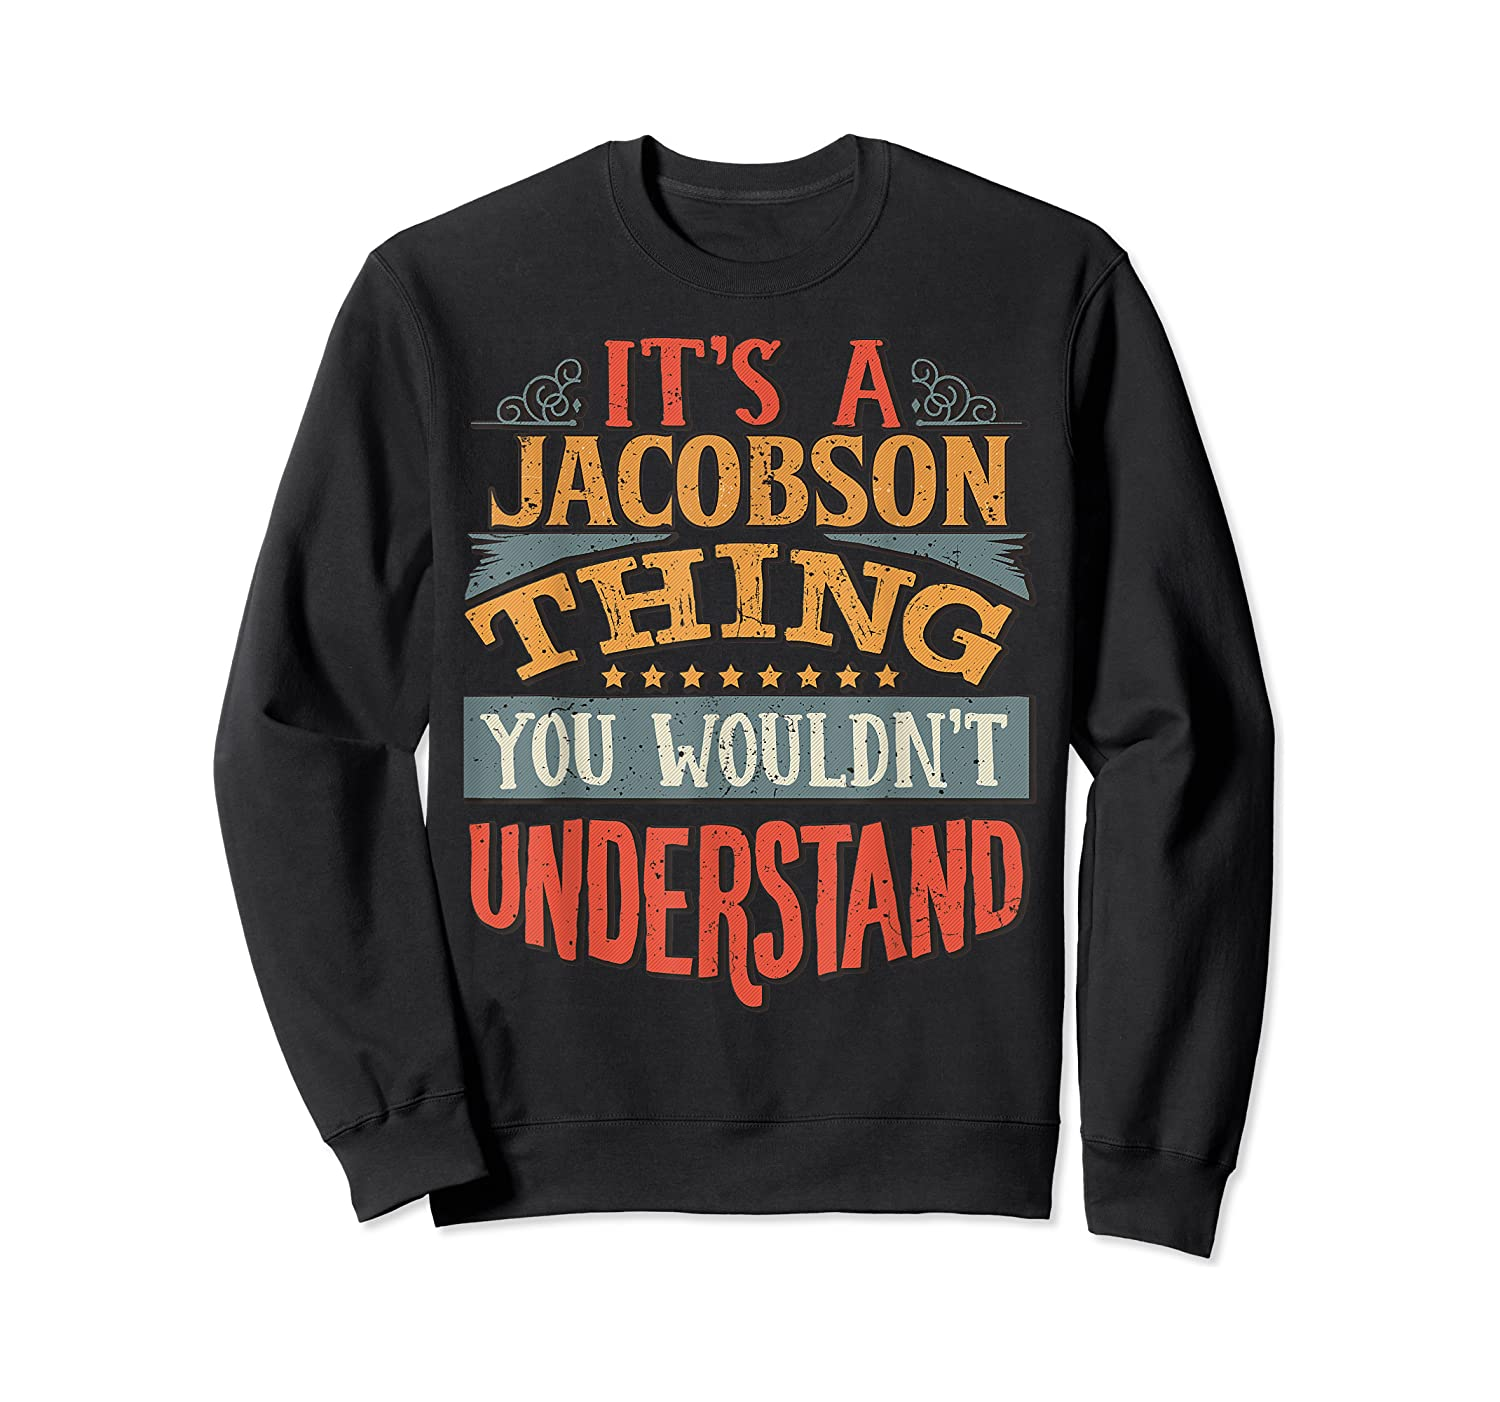 It's A Jacobson Thing You Wouldn't Understand T-shirt Crewneck Sweater